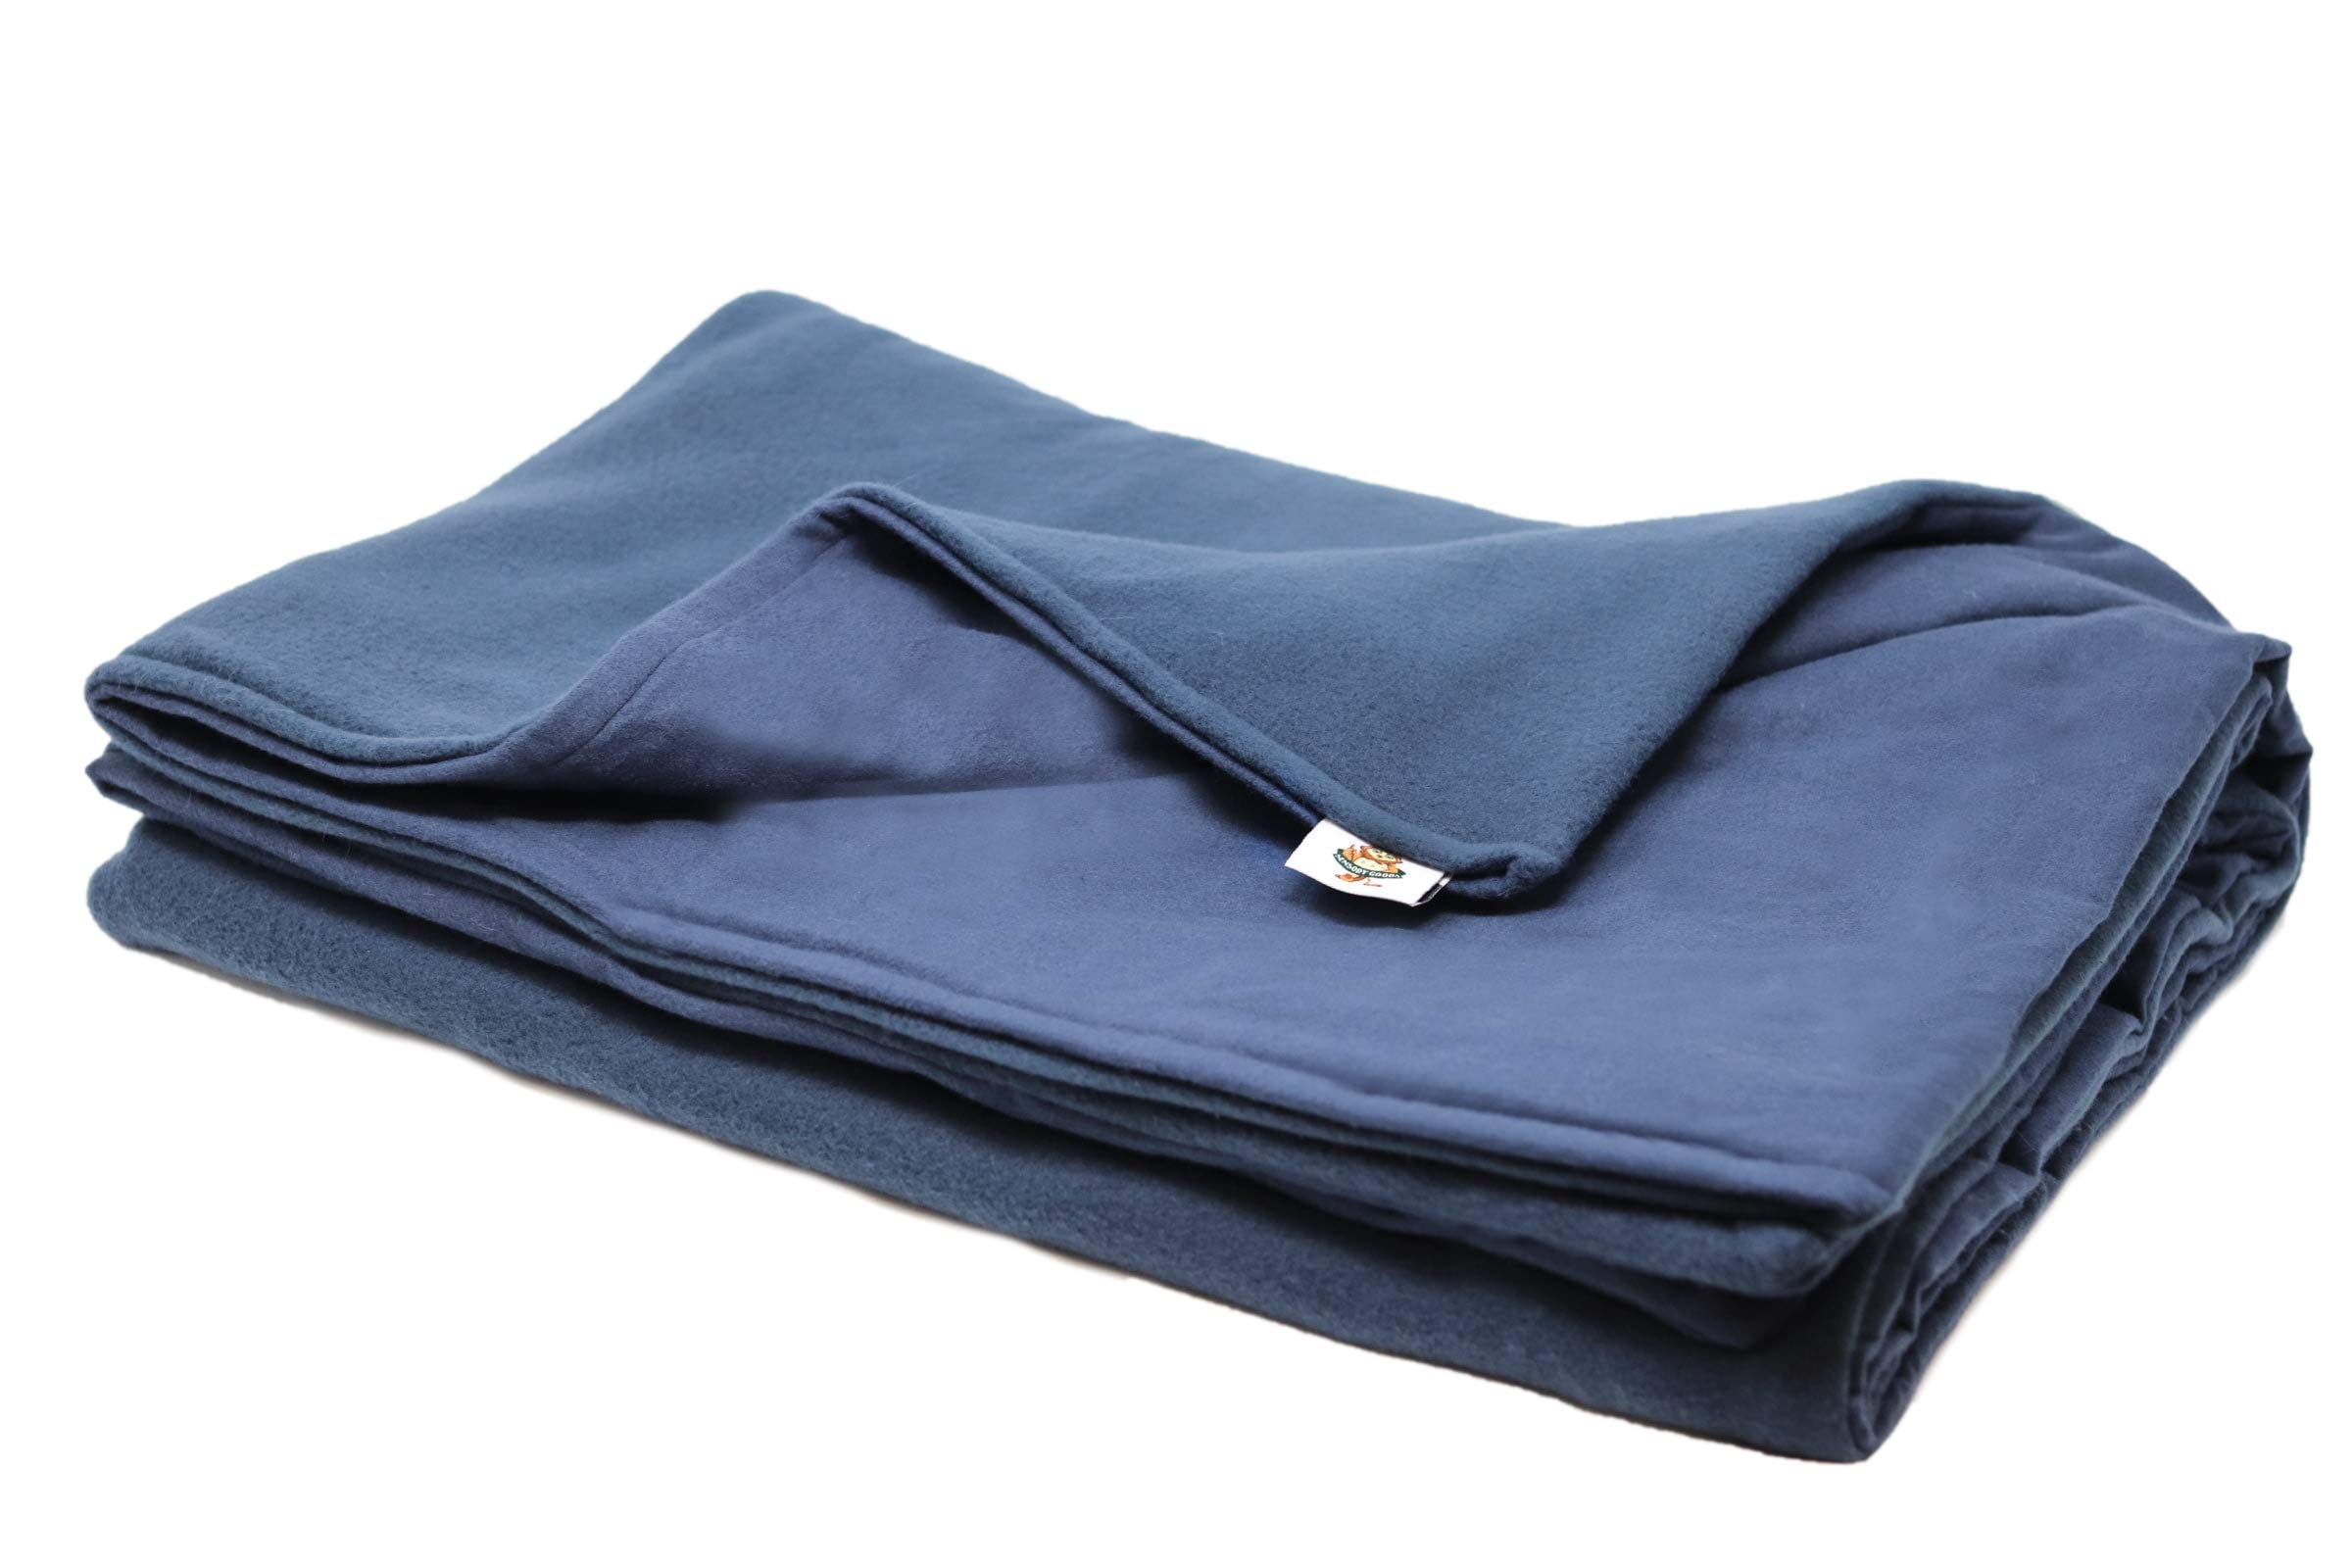 SENSORY GOODS Child Small Weighted Blanket MADE IN AMERICA- 5lb Medium Pressure - Navy (30'' x 48'') Our Weighted Blankets provide Comfort and Relaxation